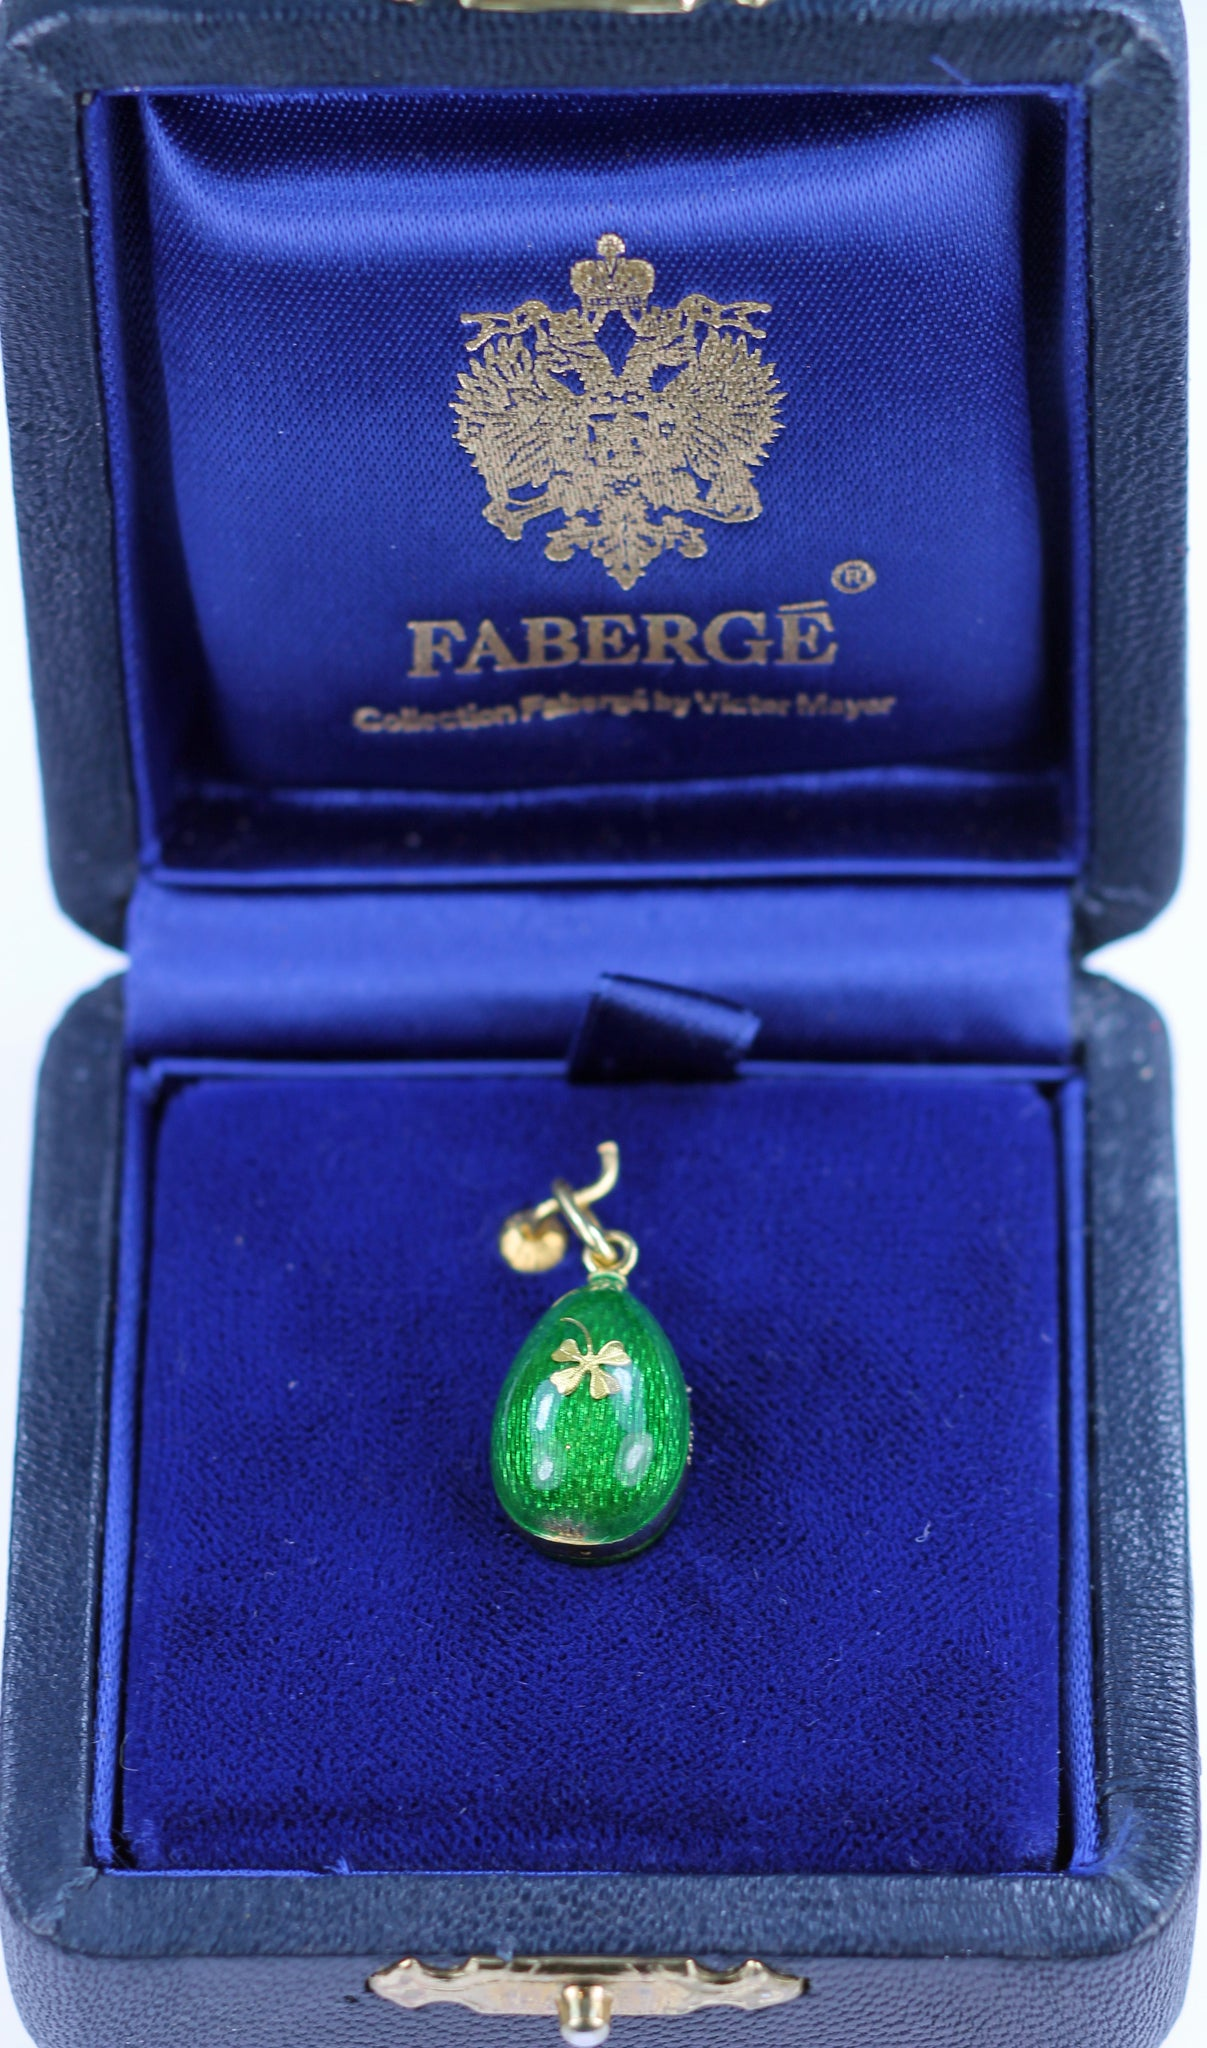 Authentic Faberge Egg